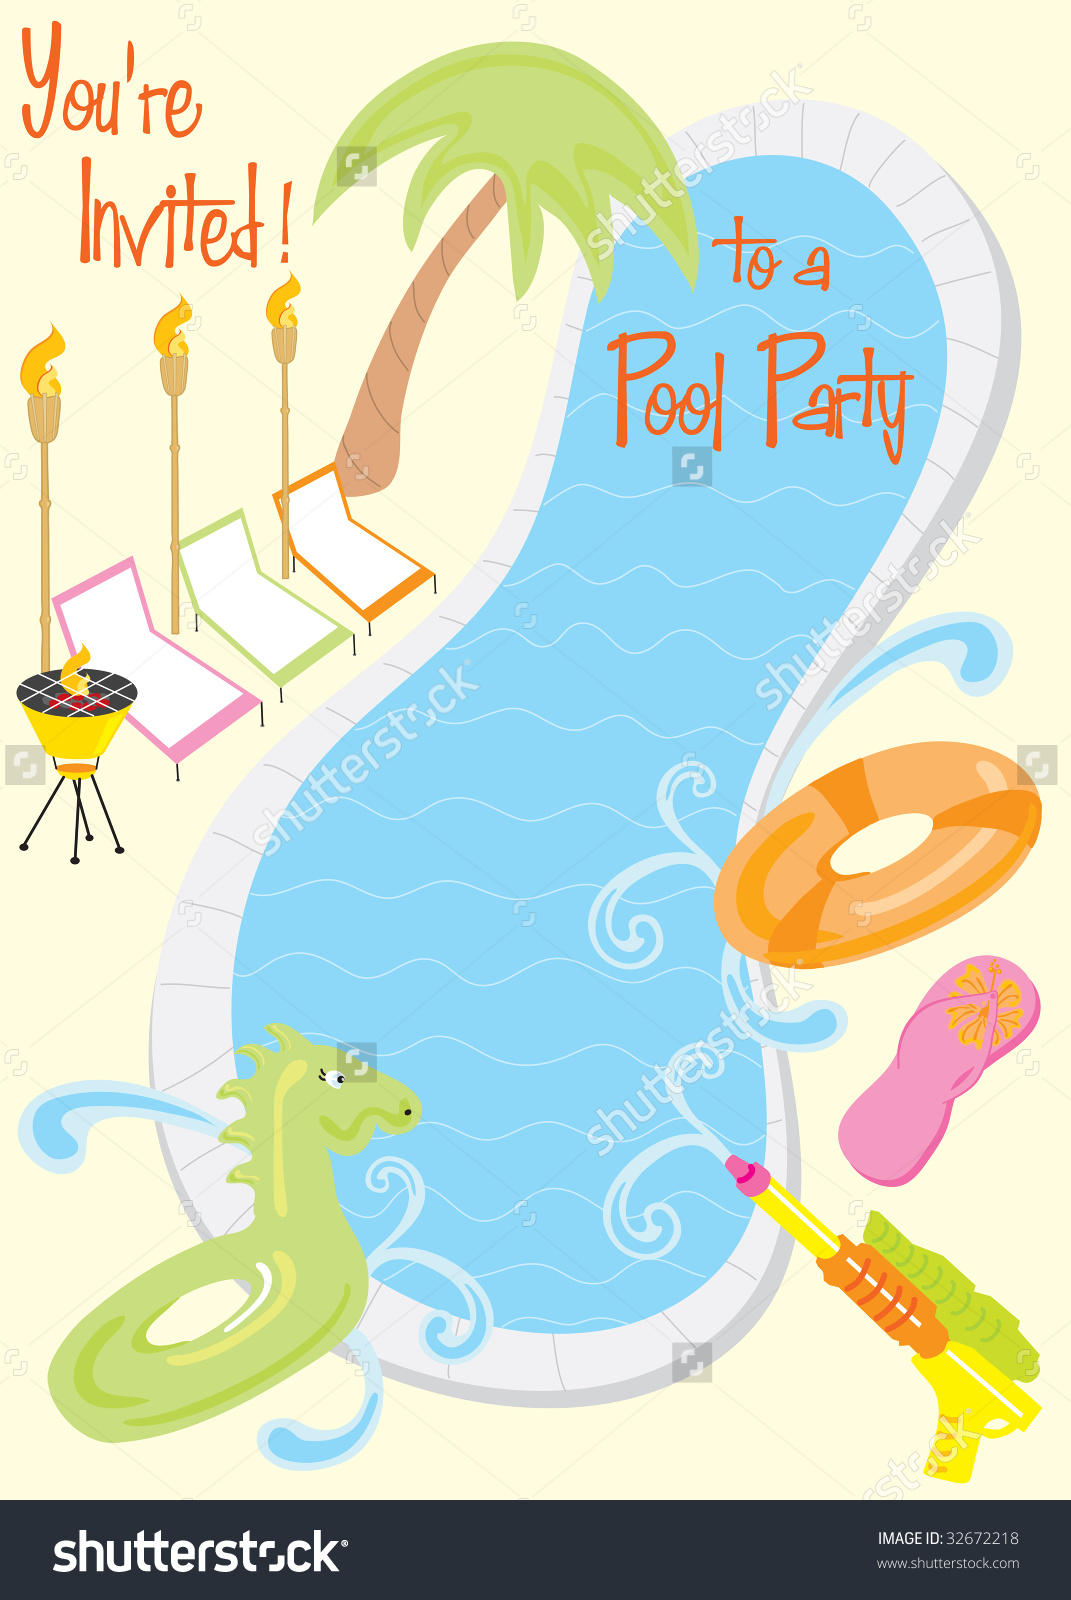 Pool Party Clipart Images | Free download best Pool Party Clipart ...